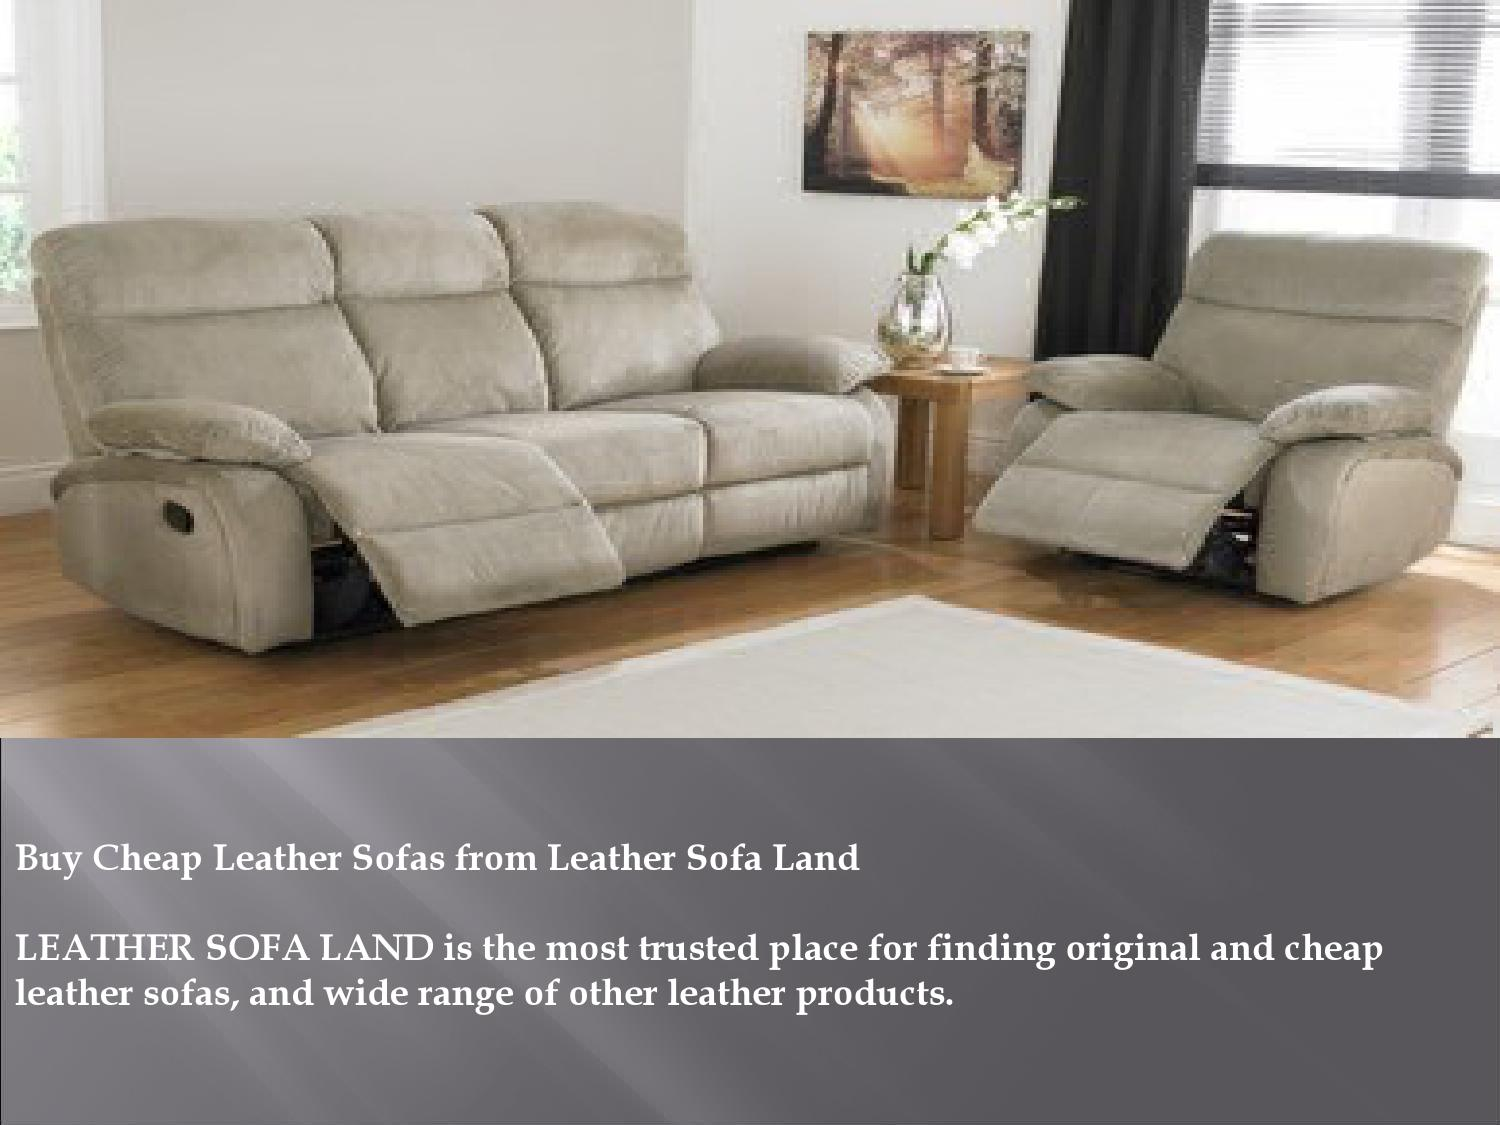 buy leather sofa buy cheap leather sofas from leather sofa land by maxwell 11878 | page 1